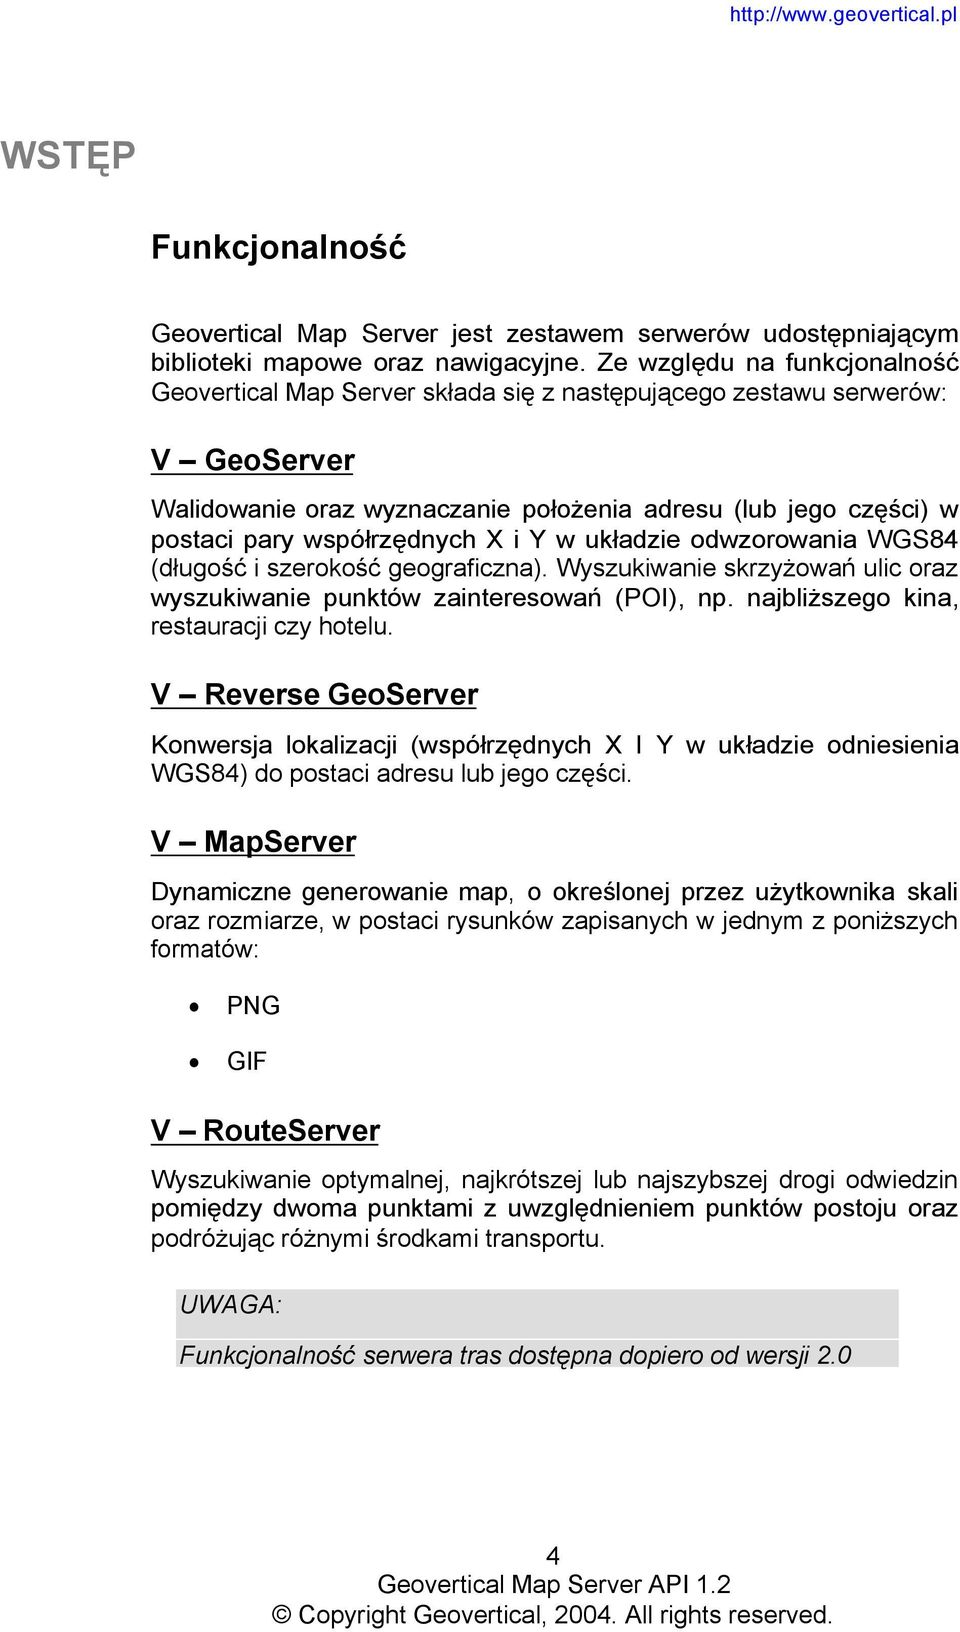 Geovertical Map Server API PDF